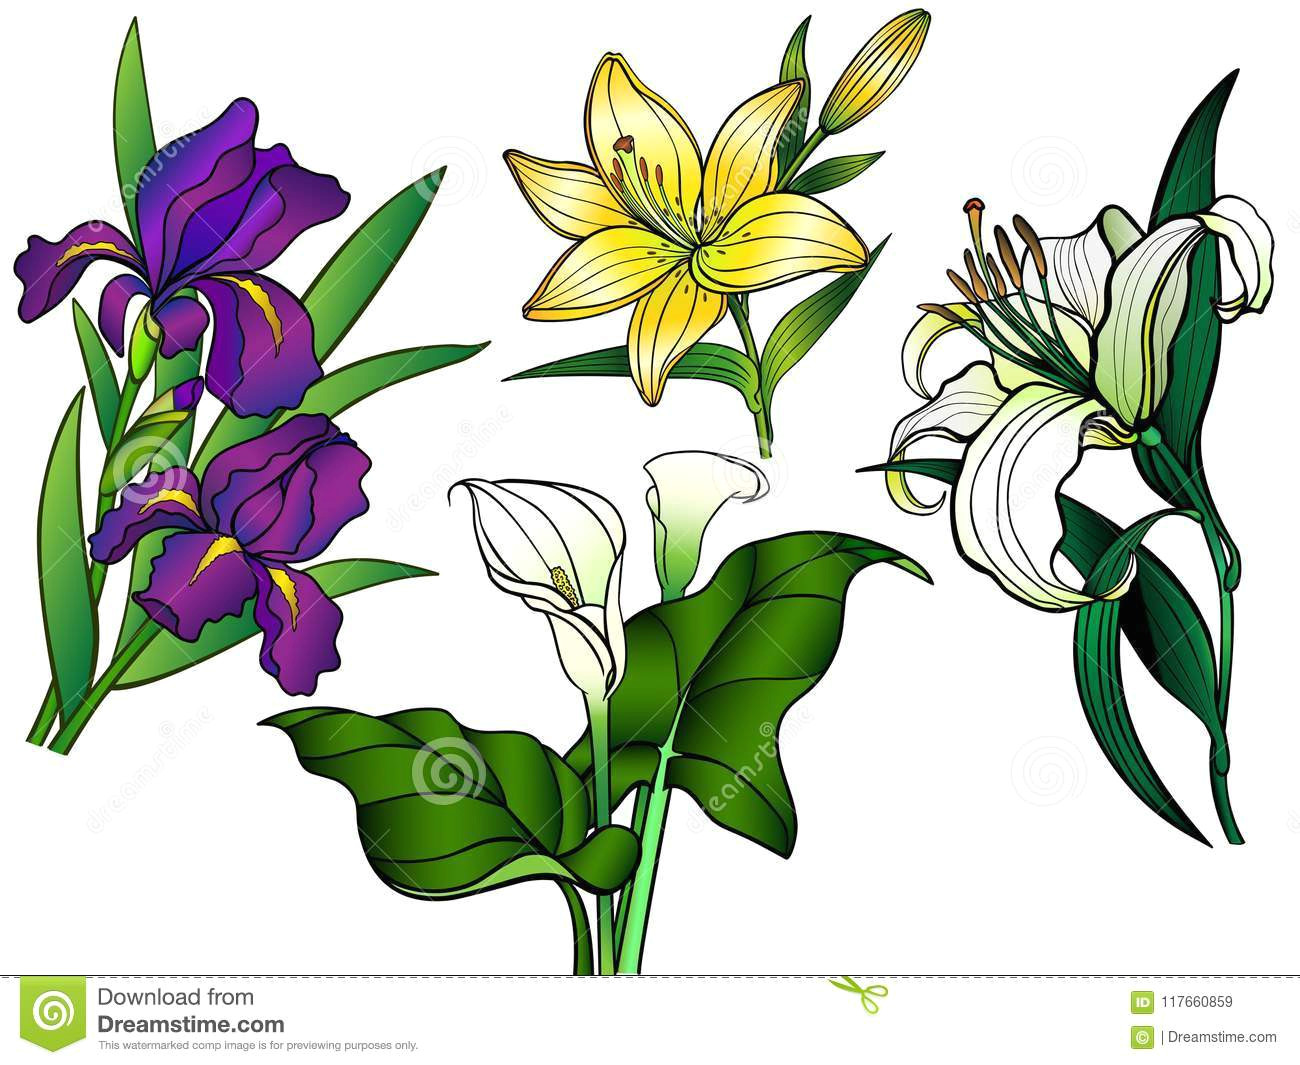 linear flowers and leaves with a gradient callas lilies irises garden flowers